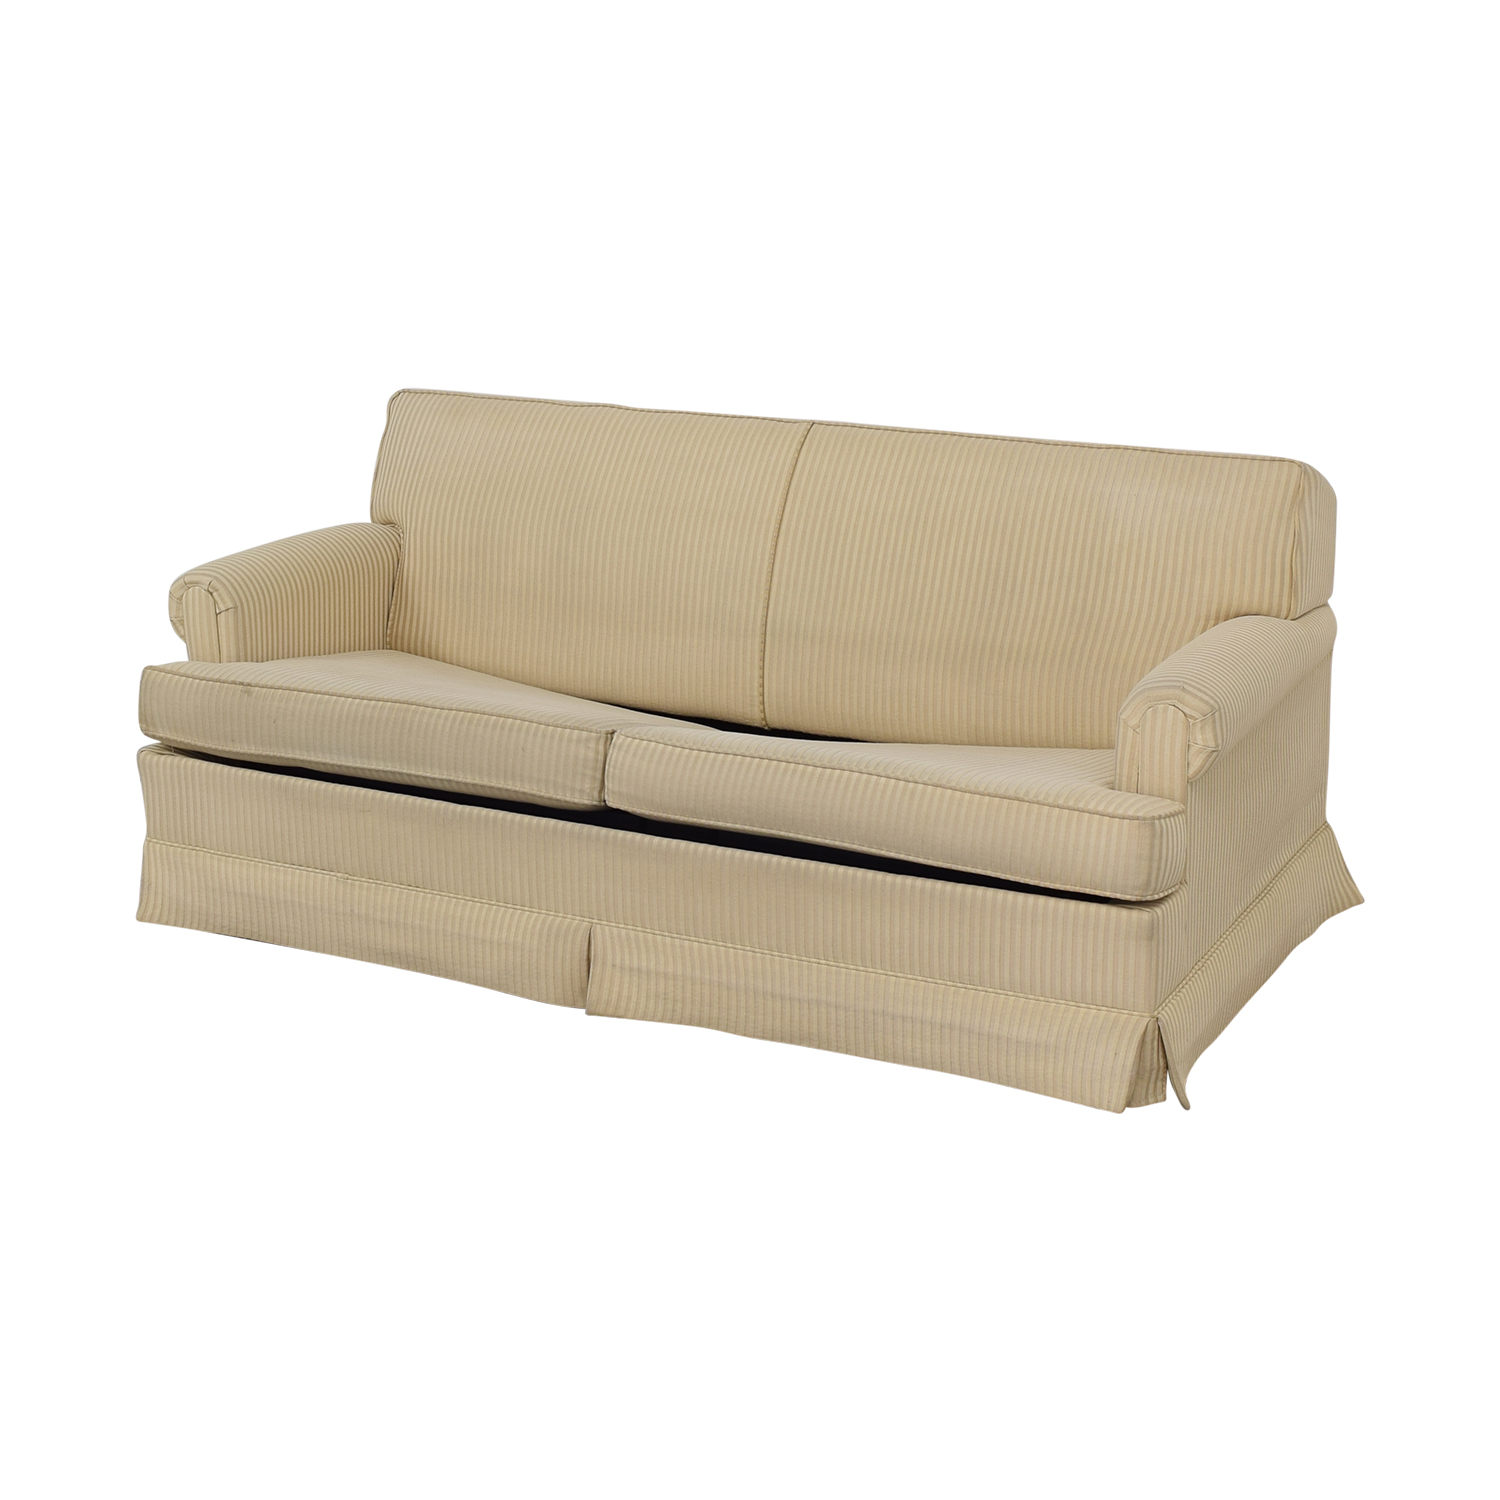 buy Stearns & Foster Two-Cushion Sleeper Sofa Stearns & Foster Sofa Beds